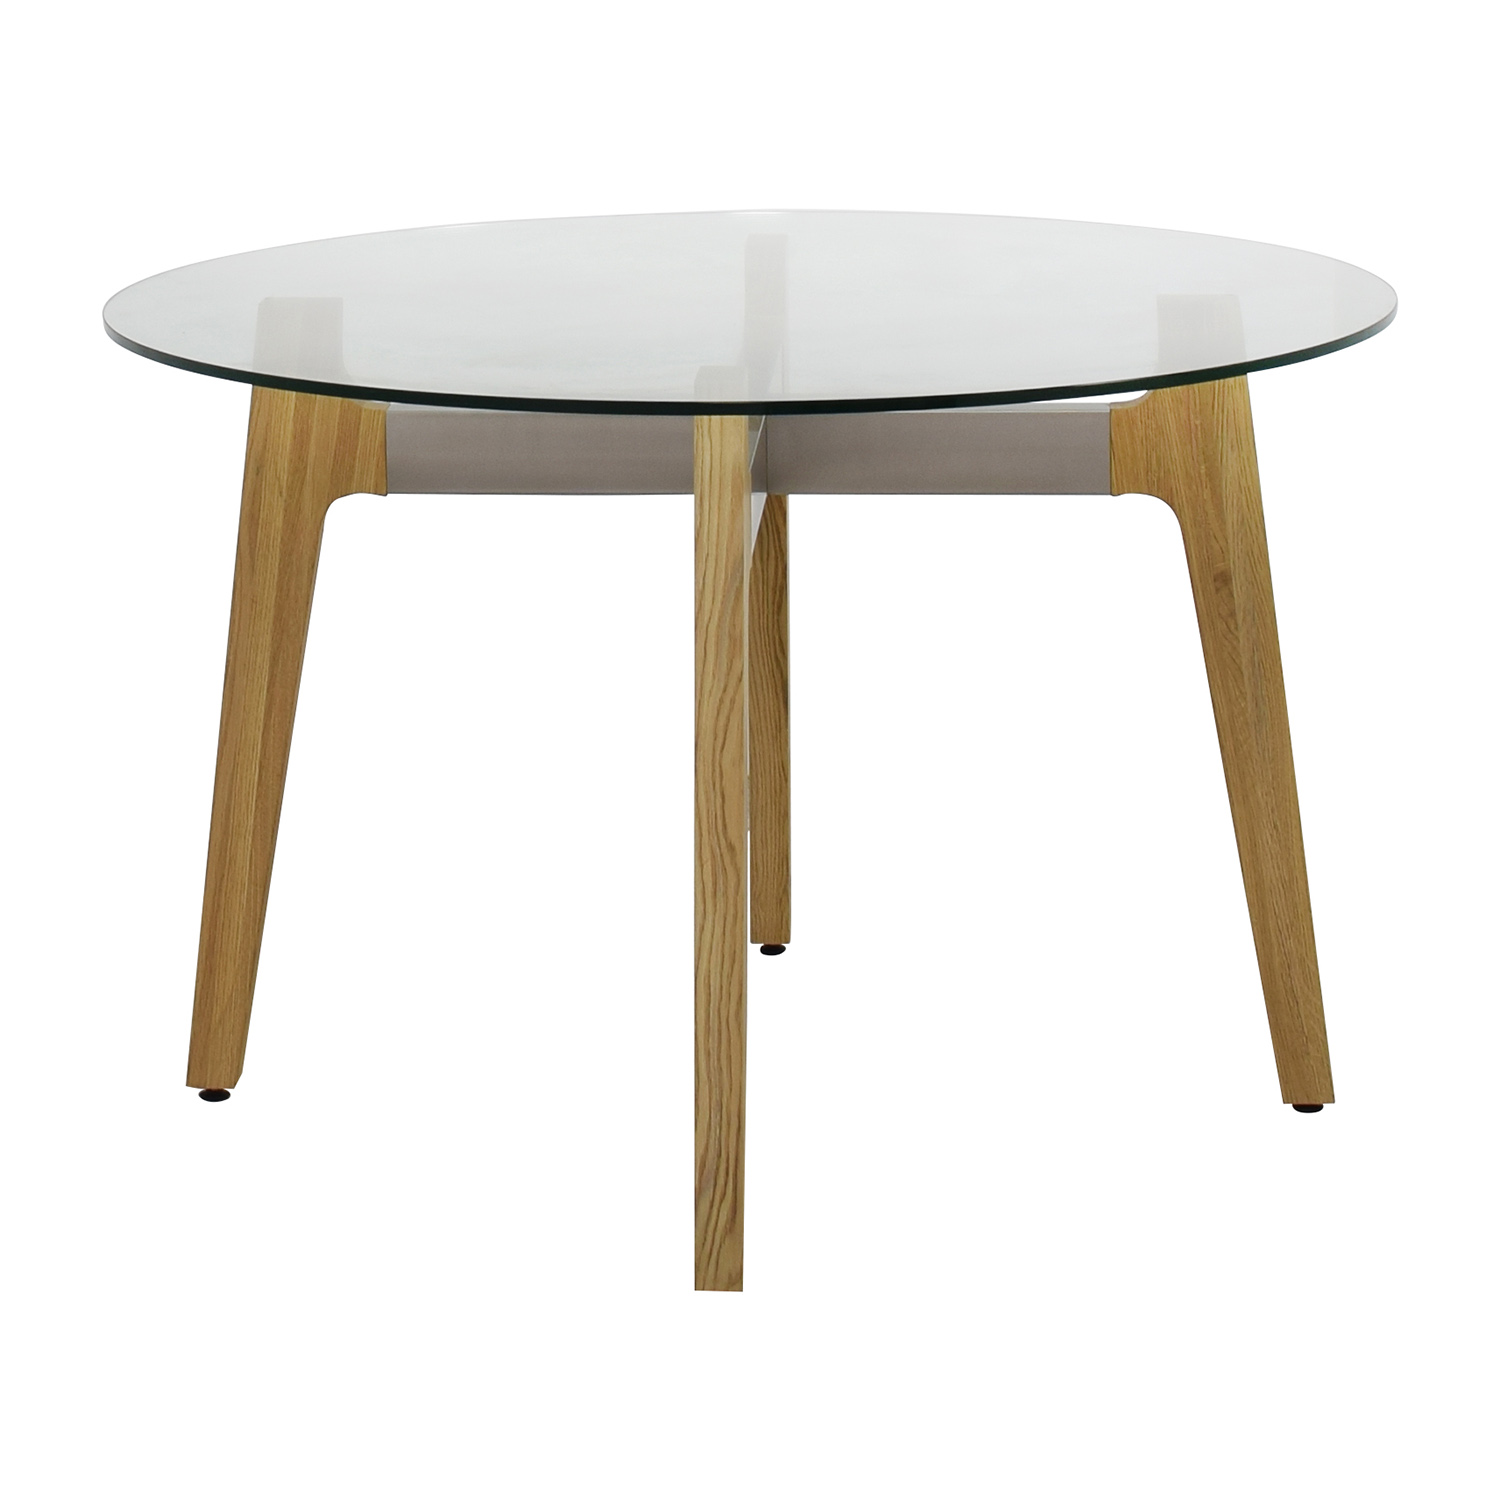 50 off cb2 cb2 round brace dining table tables for Buy round table